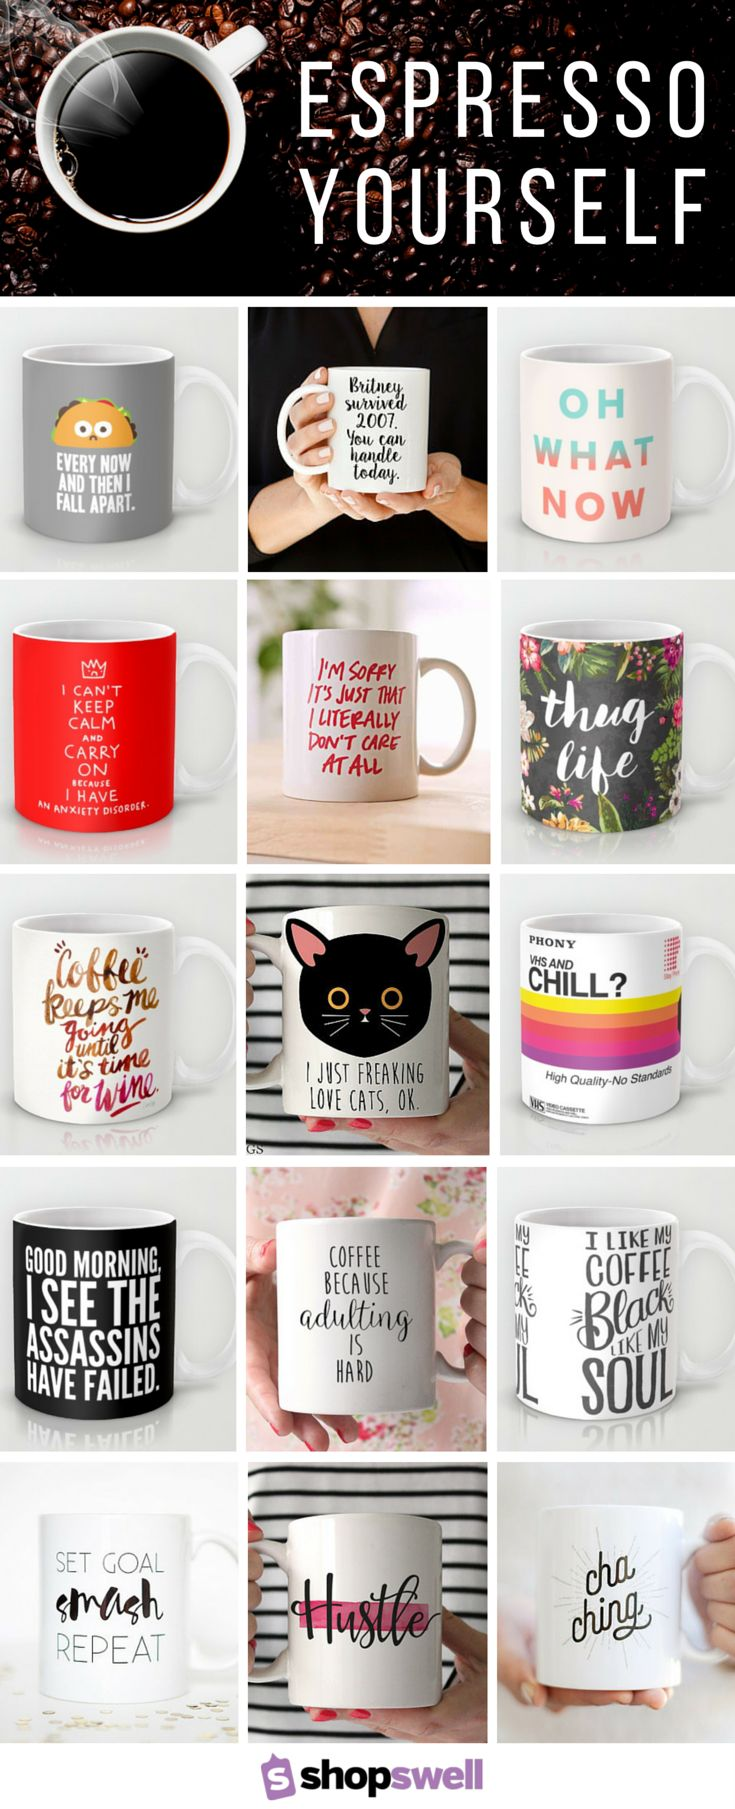 Espresso yourself with one (or three) of these quotable coffee or tea mugs.